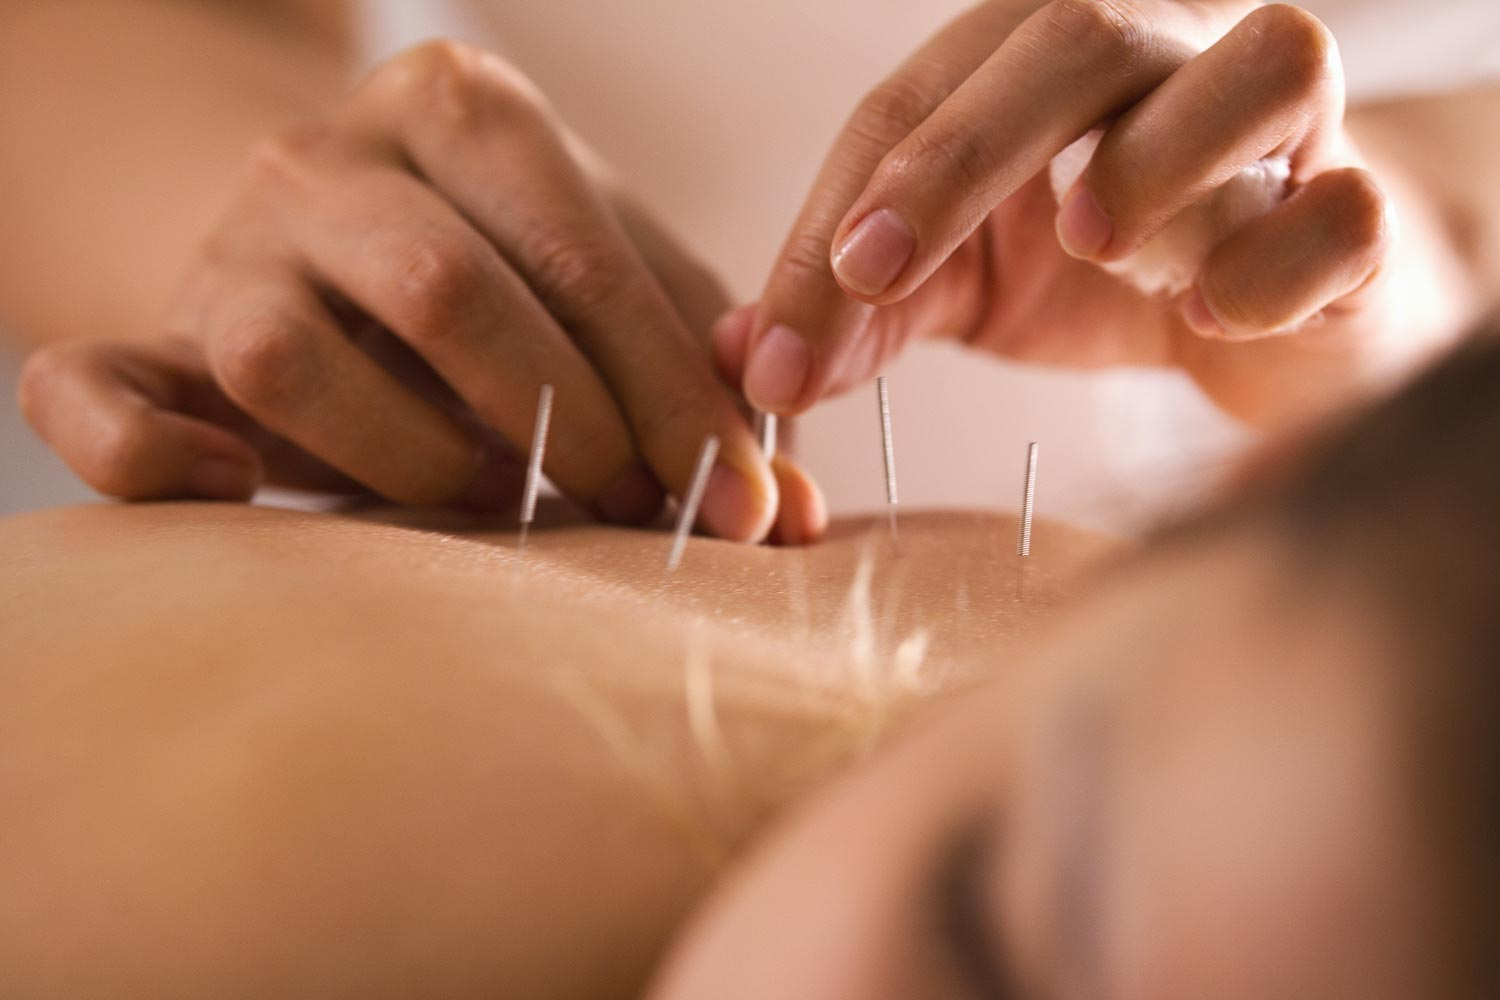 https://integratedhealthofsi.com/wp-content/uploads/2018/11/Acupuncture.jpg